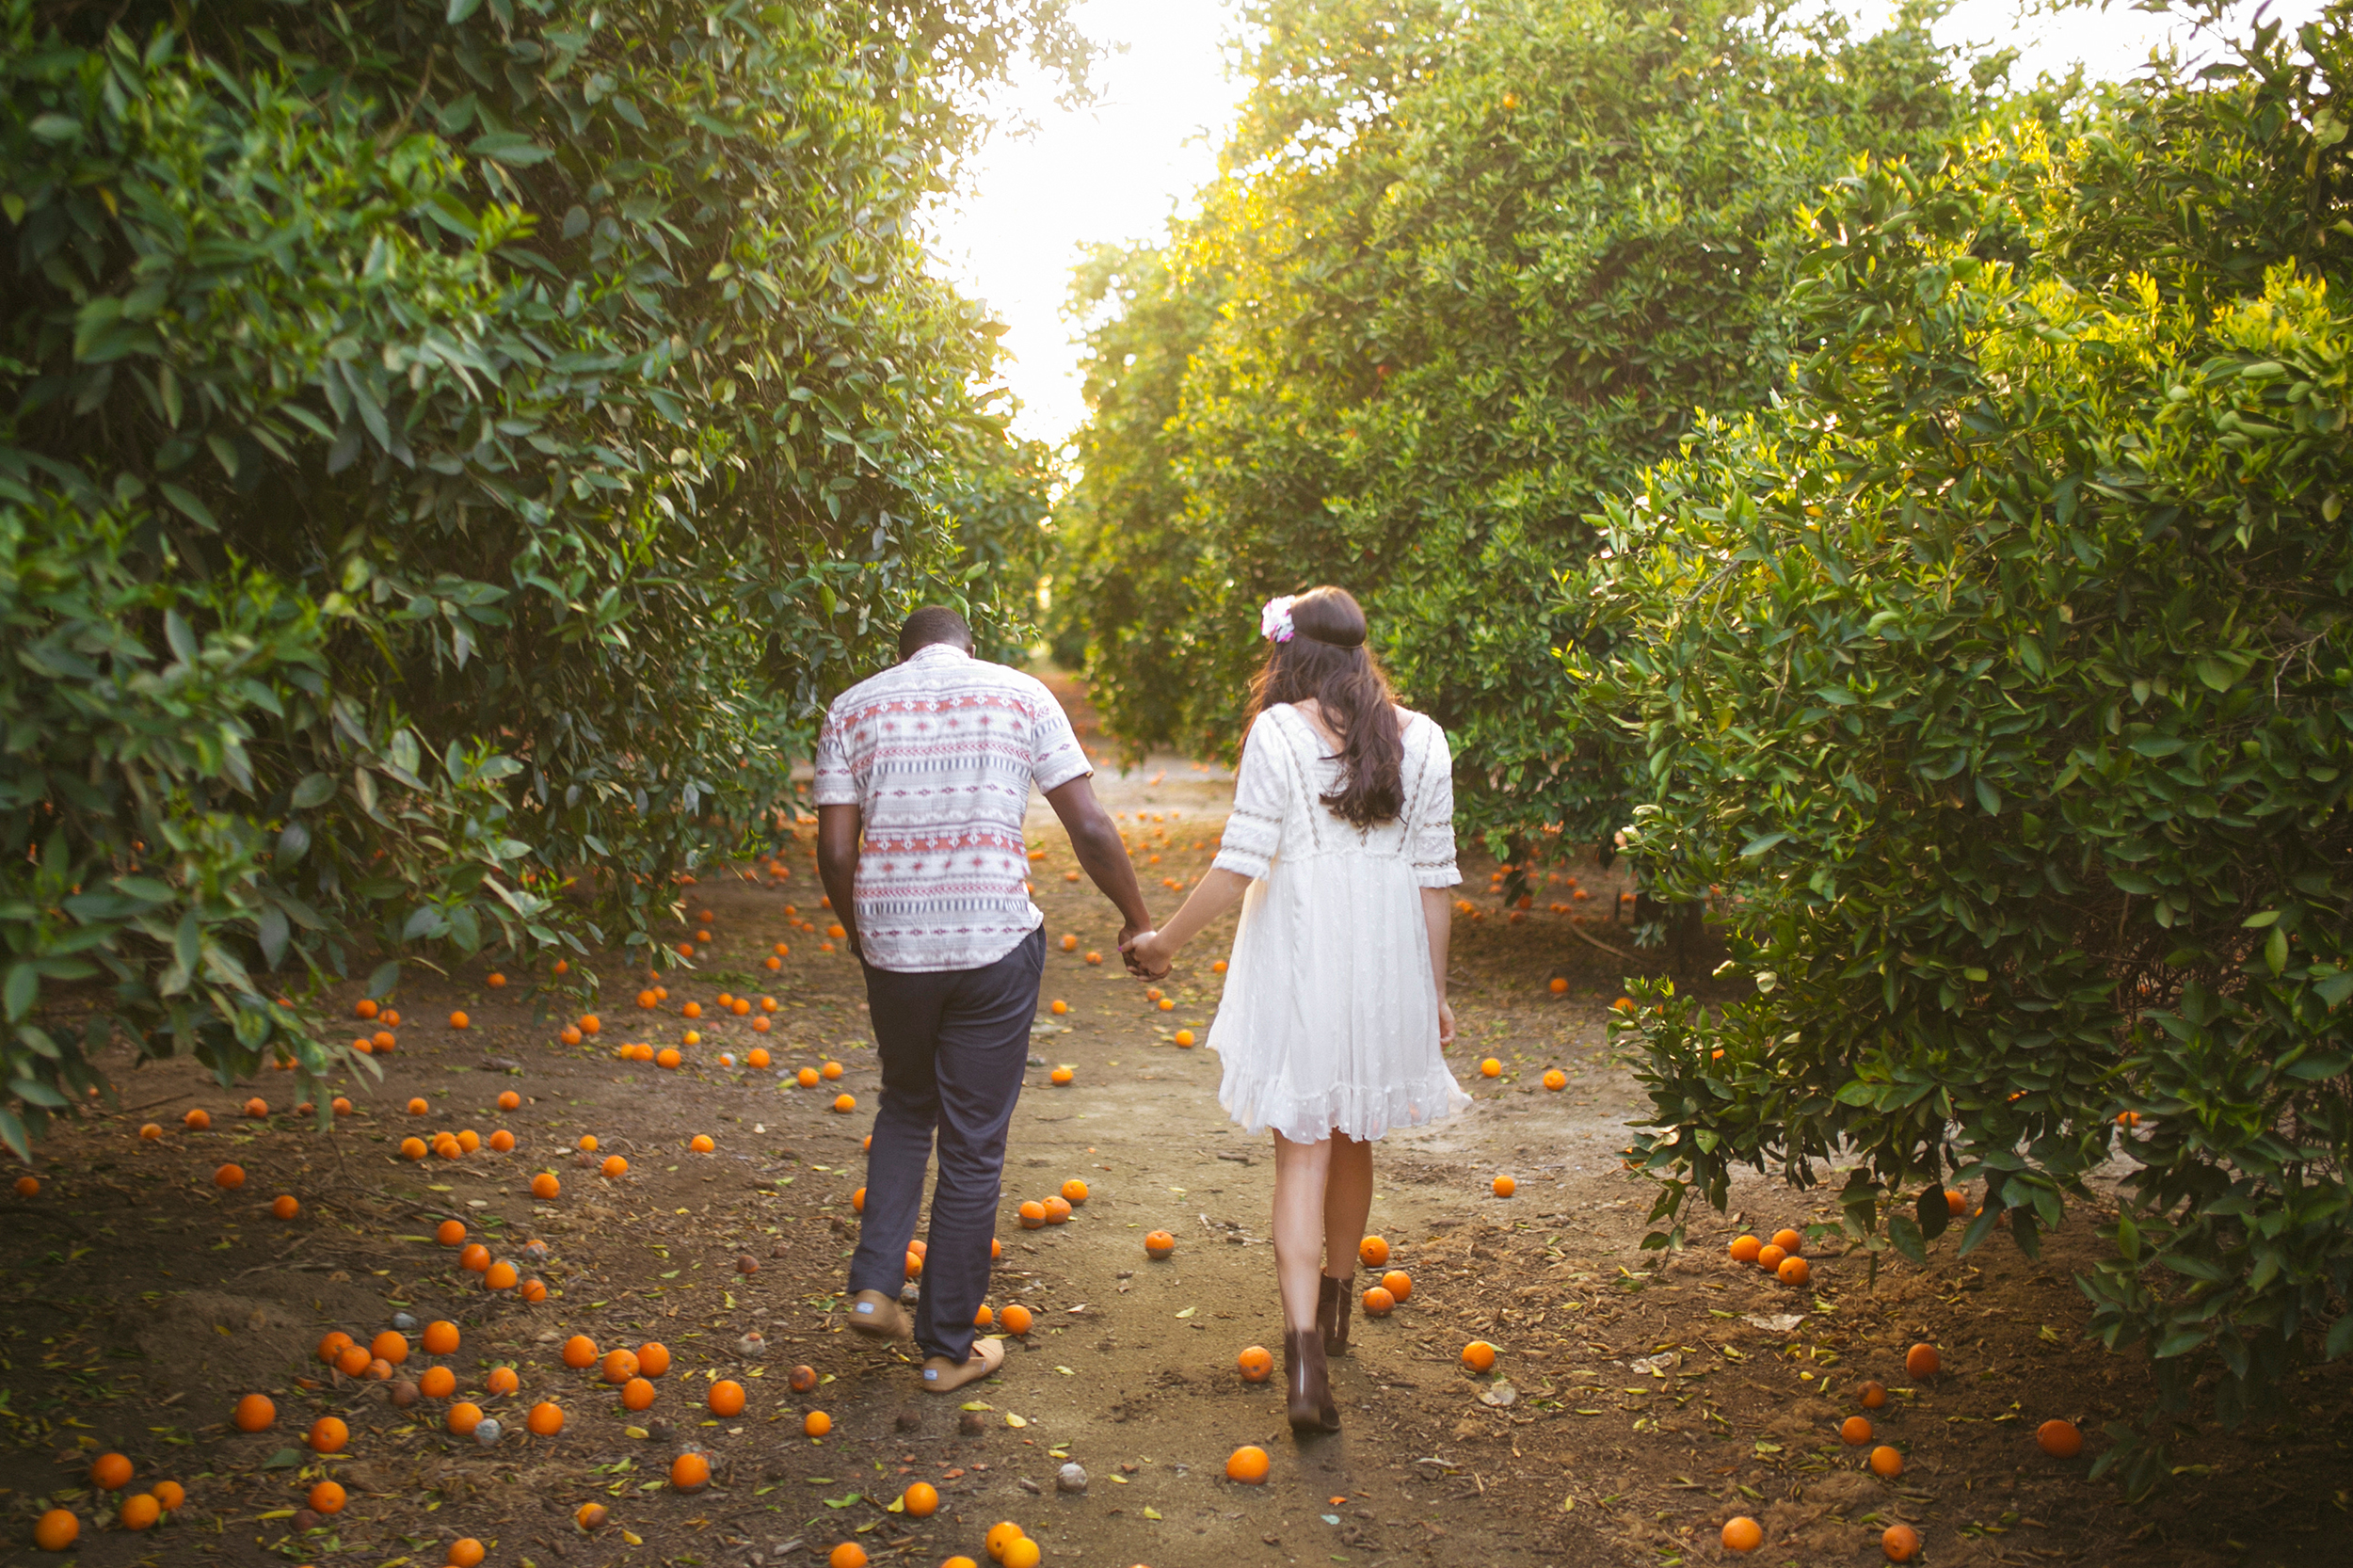 Colby-and-Jess-Adventure-Engagement-Photography-Orange-Grove-San-Bernardino-California255.jpg